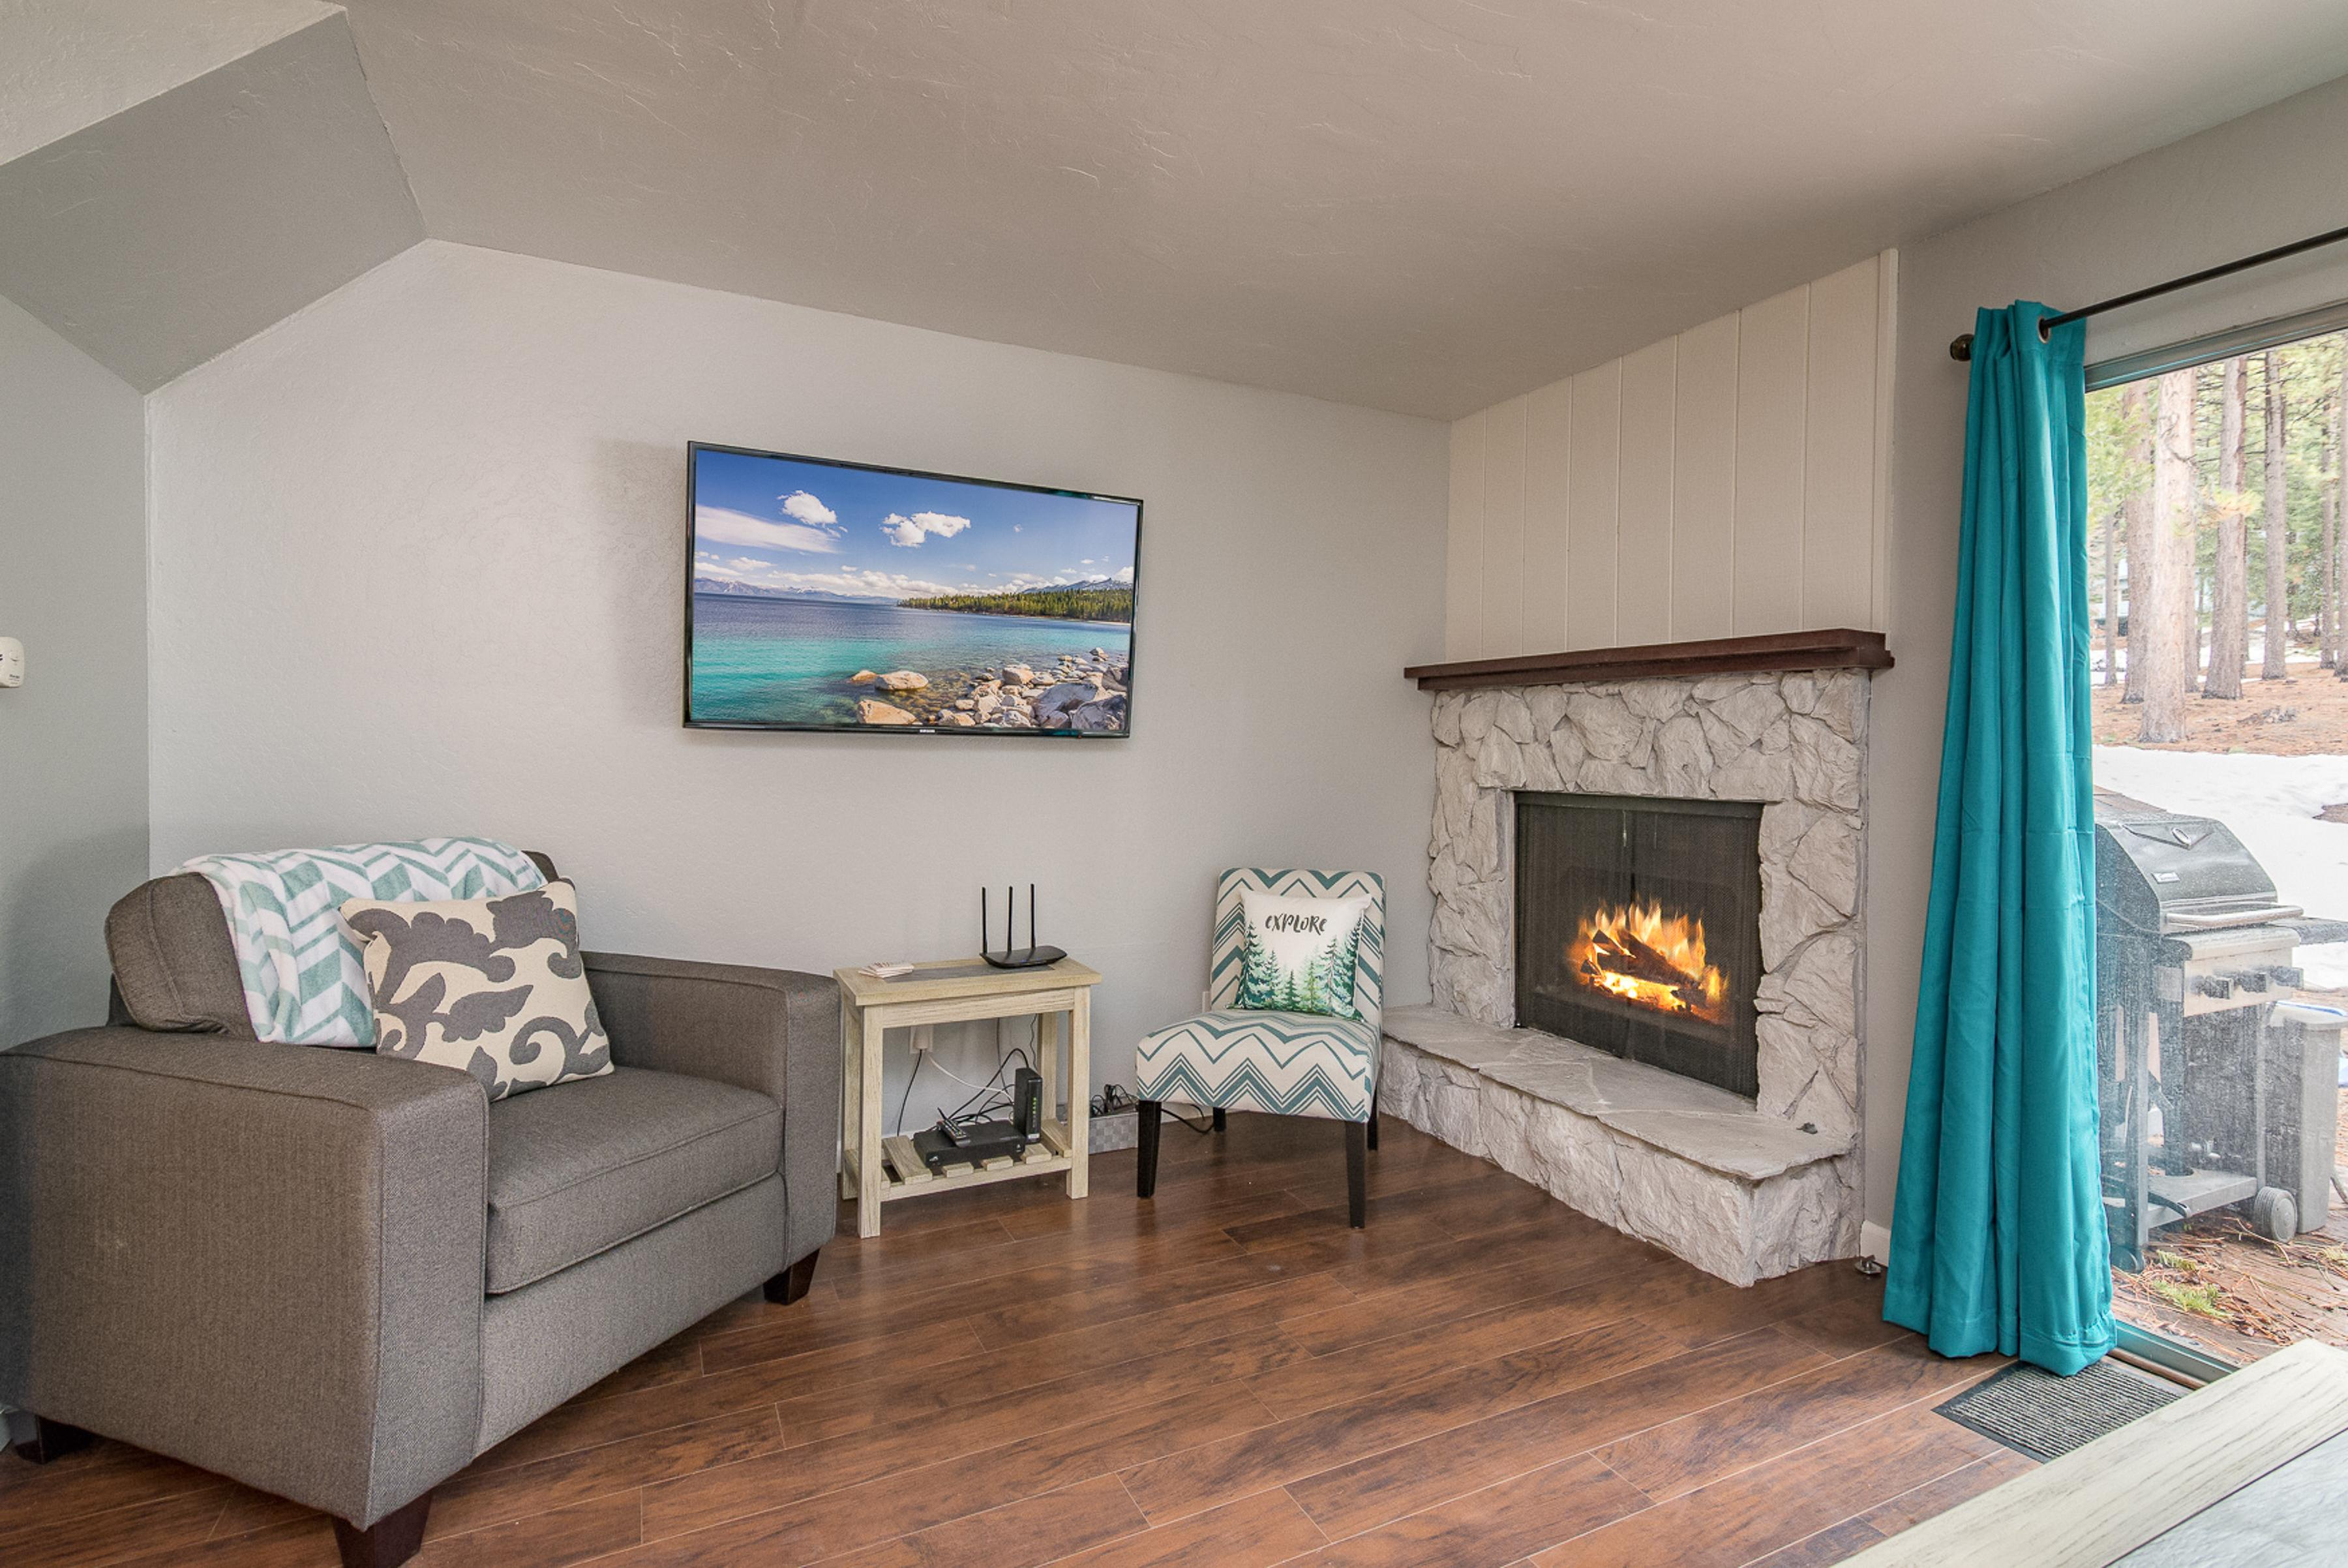 The gas fireplace creates a cozy ambience in the living room.